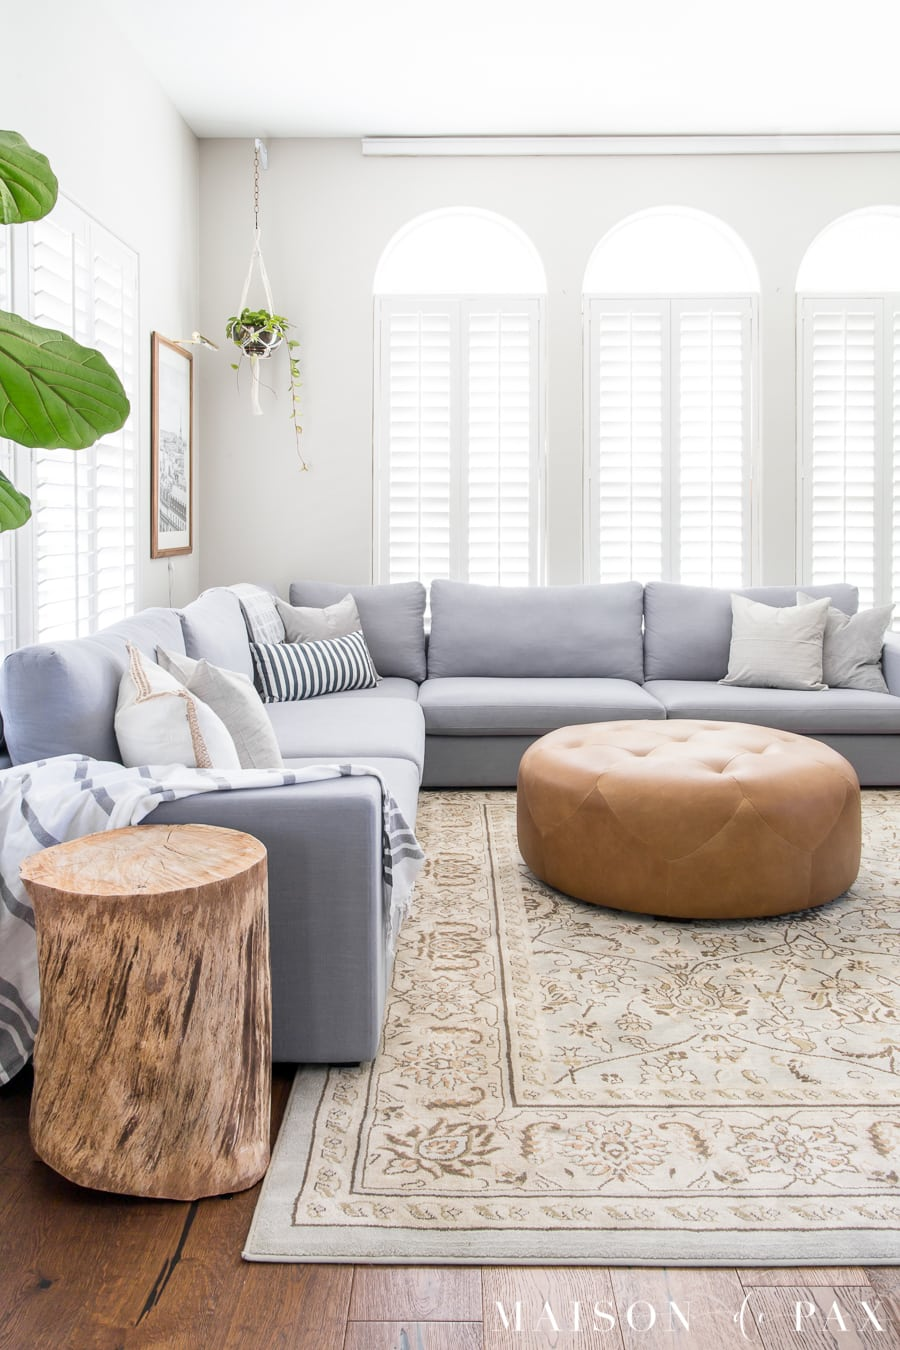 Wondering how to decorate a living room with a sectional? Get 3 essential tips to create a beautiful, open space! #sectionalsofa #modularsofa #livingroomdecor #livingroomdesign #rusticmodern #lightgraysectional #graysectional #neutrallivingroom